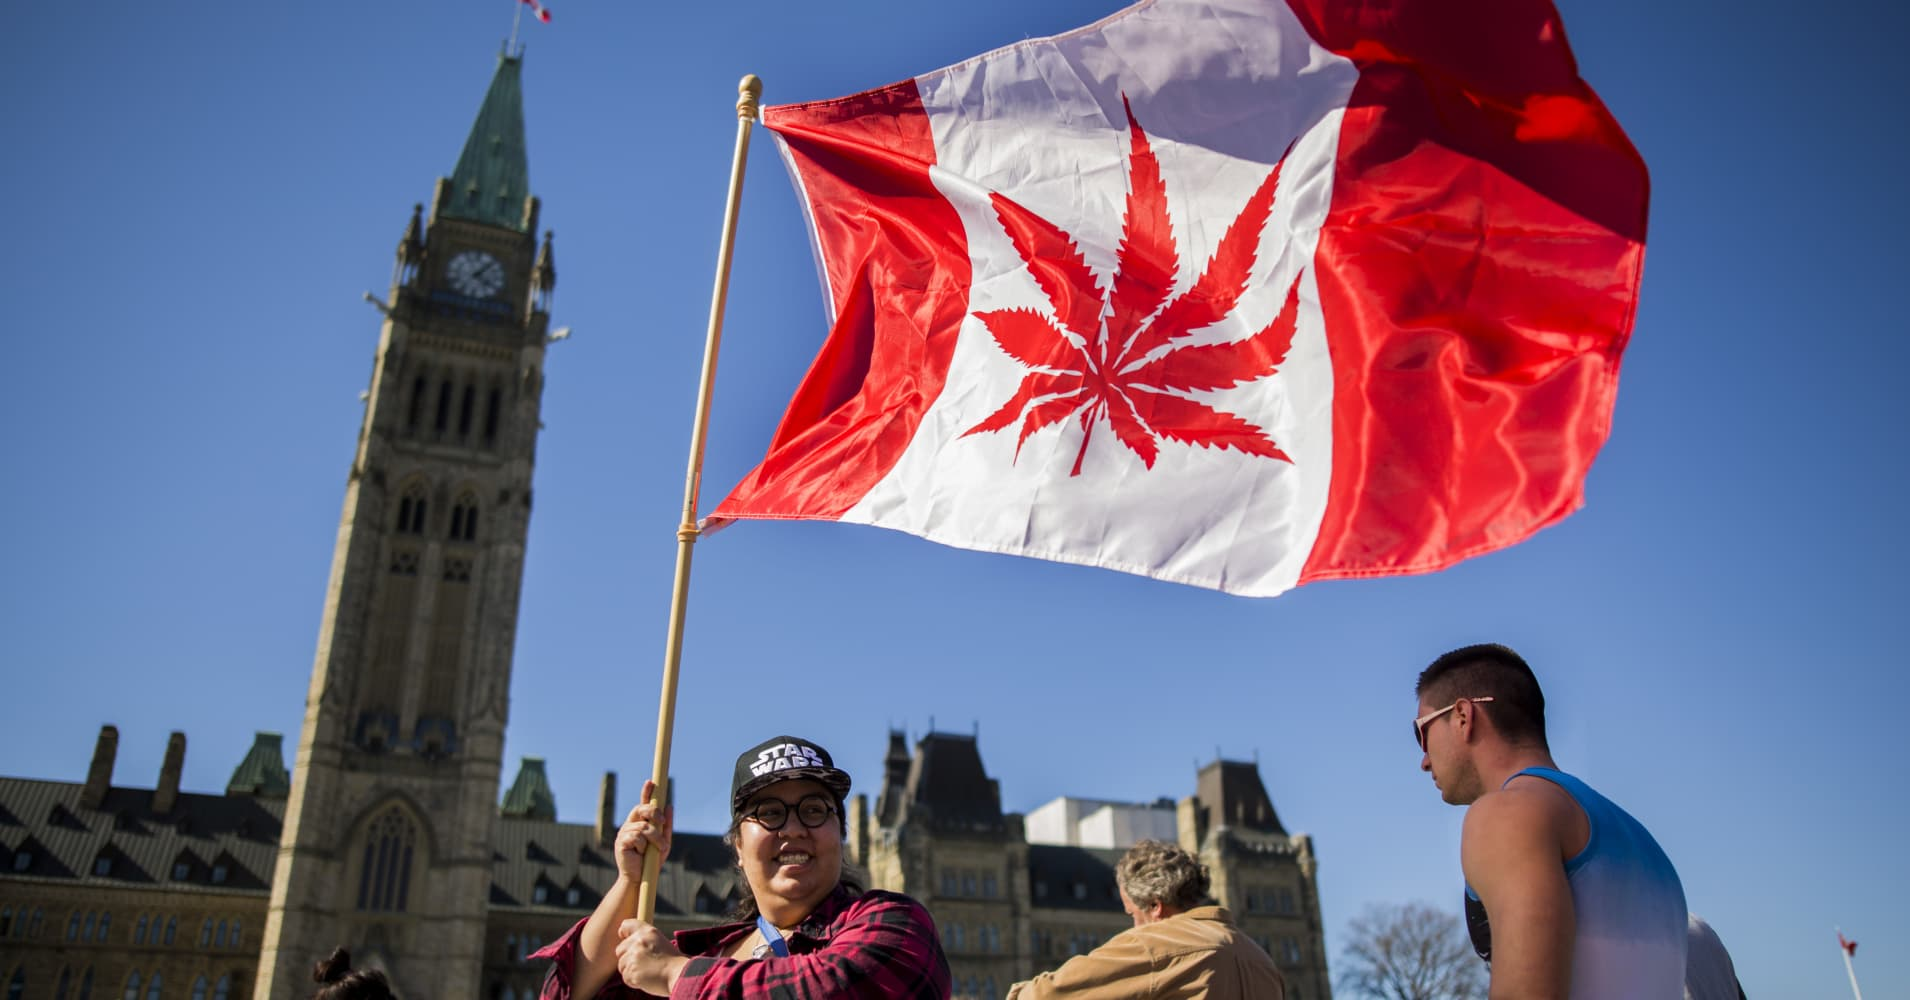 Canada is now the world's largest legal marijuana marketplace